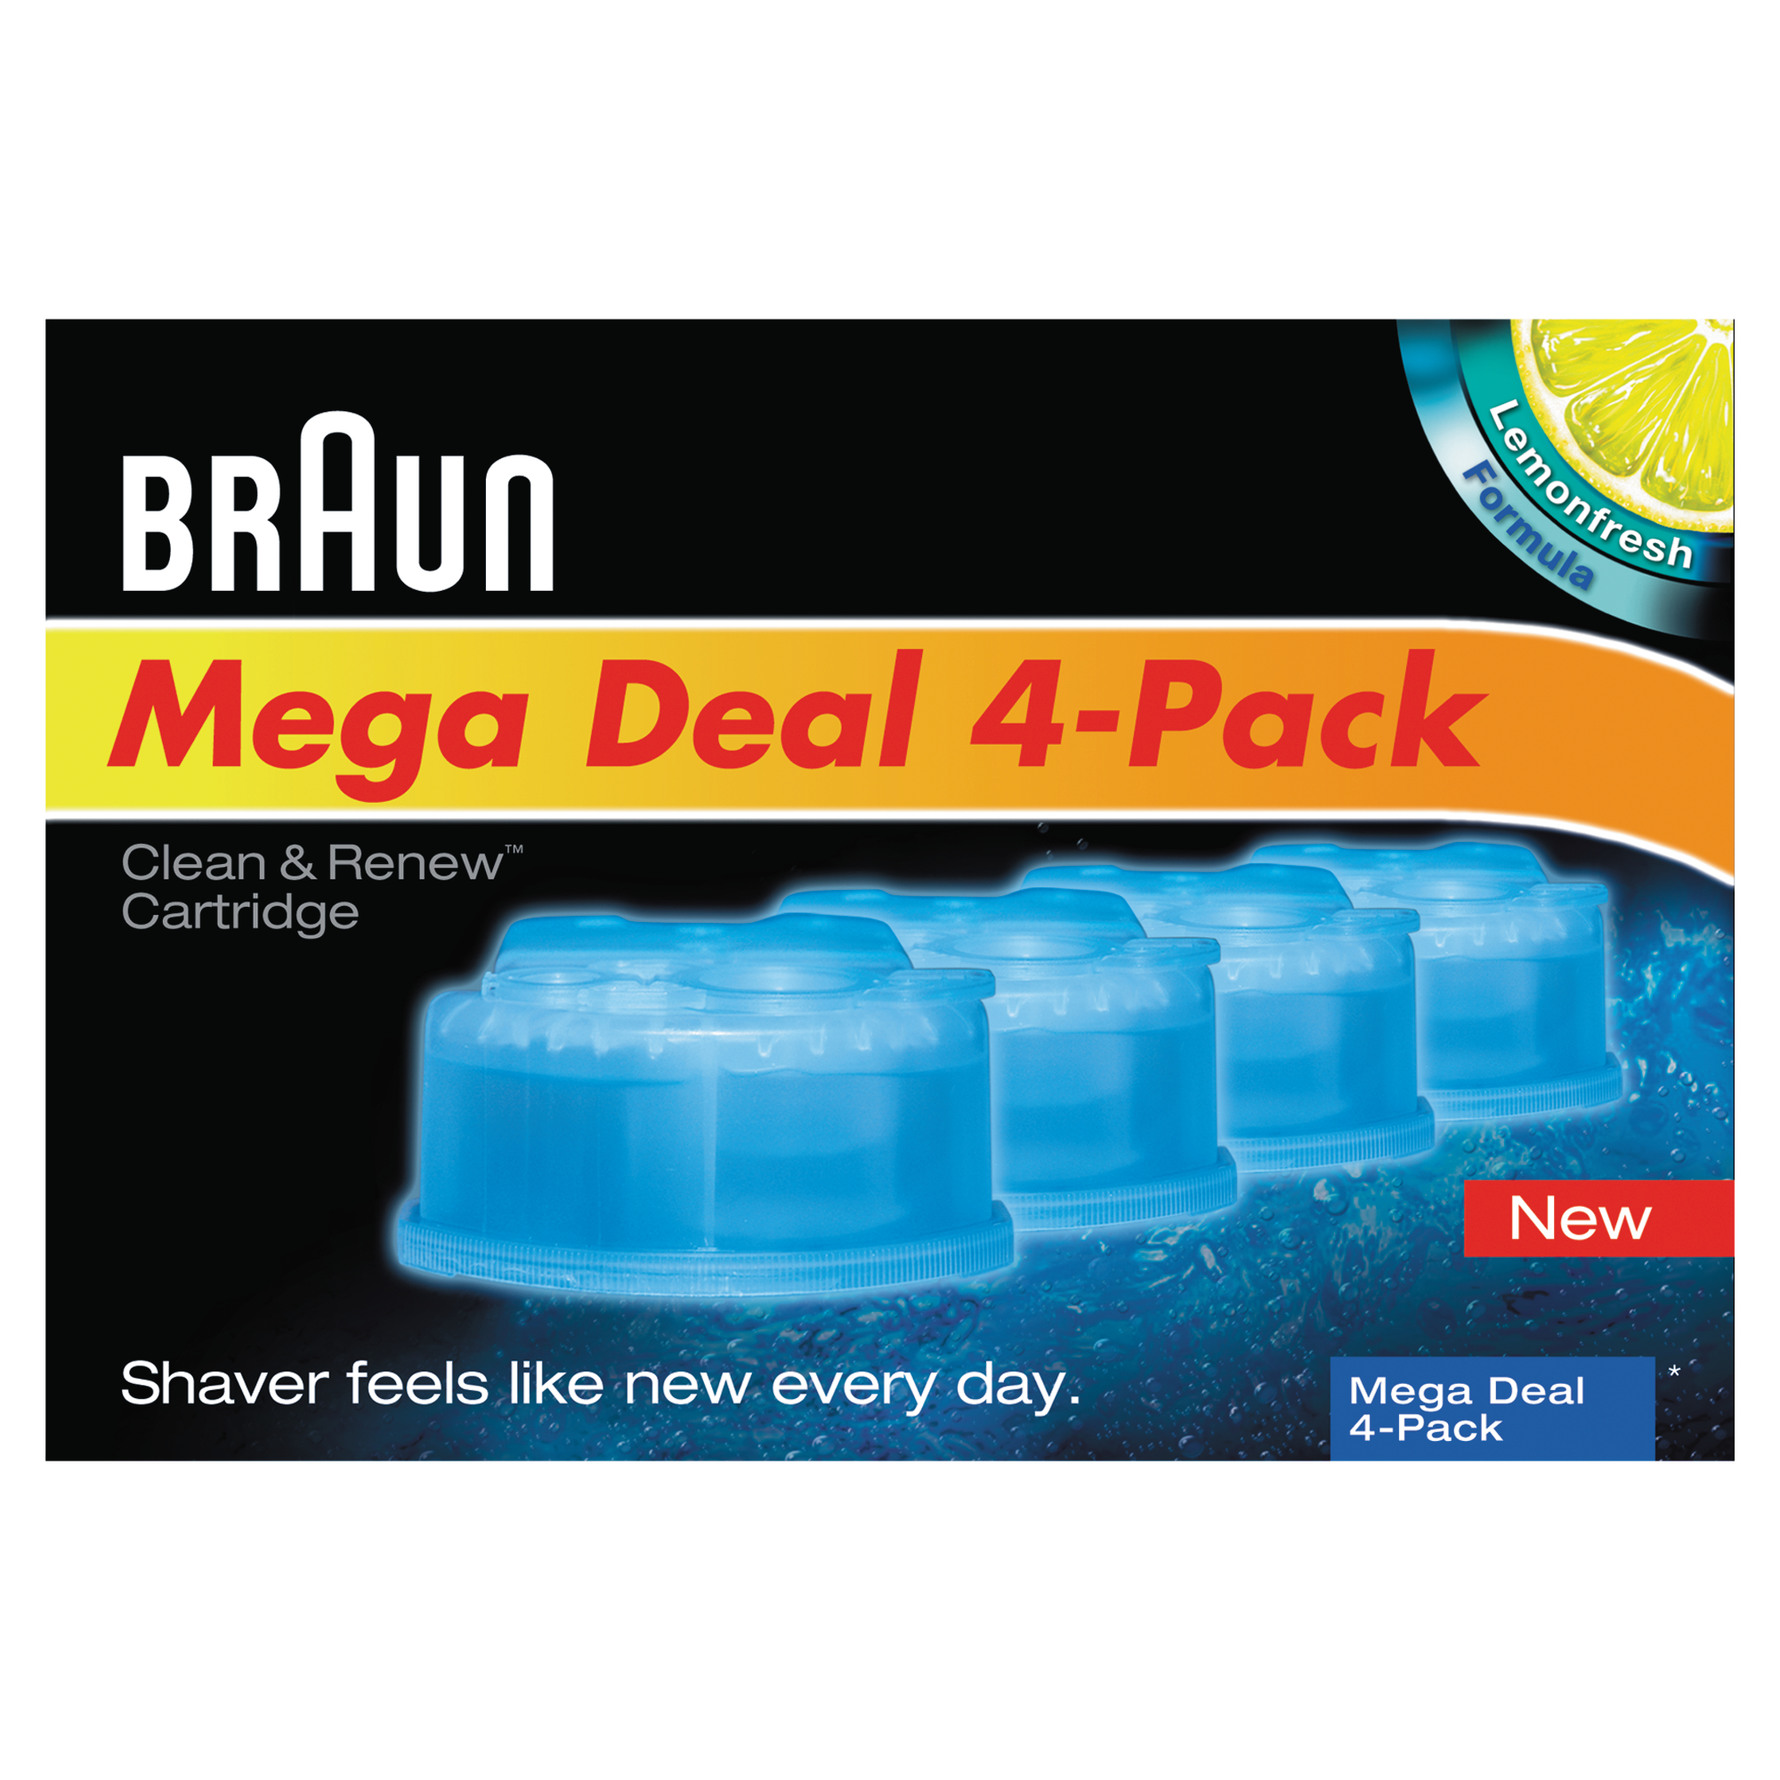 braun clean and renew cartridge instructions